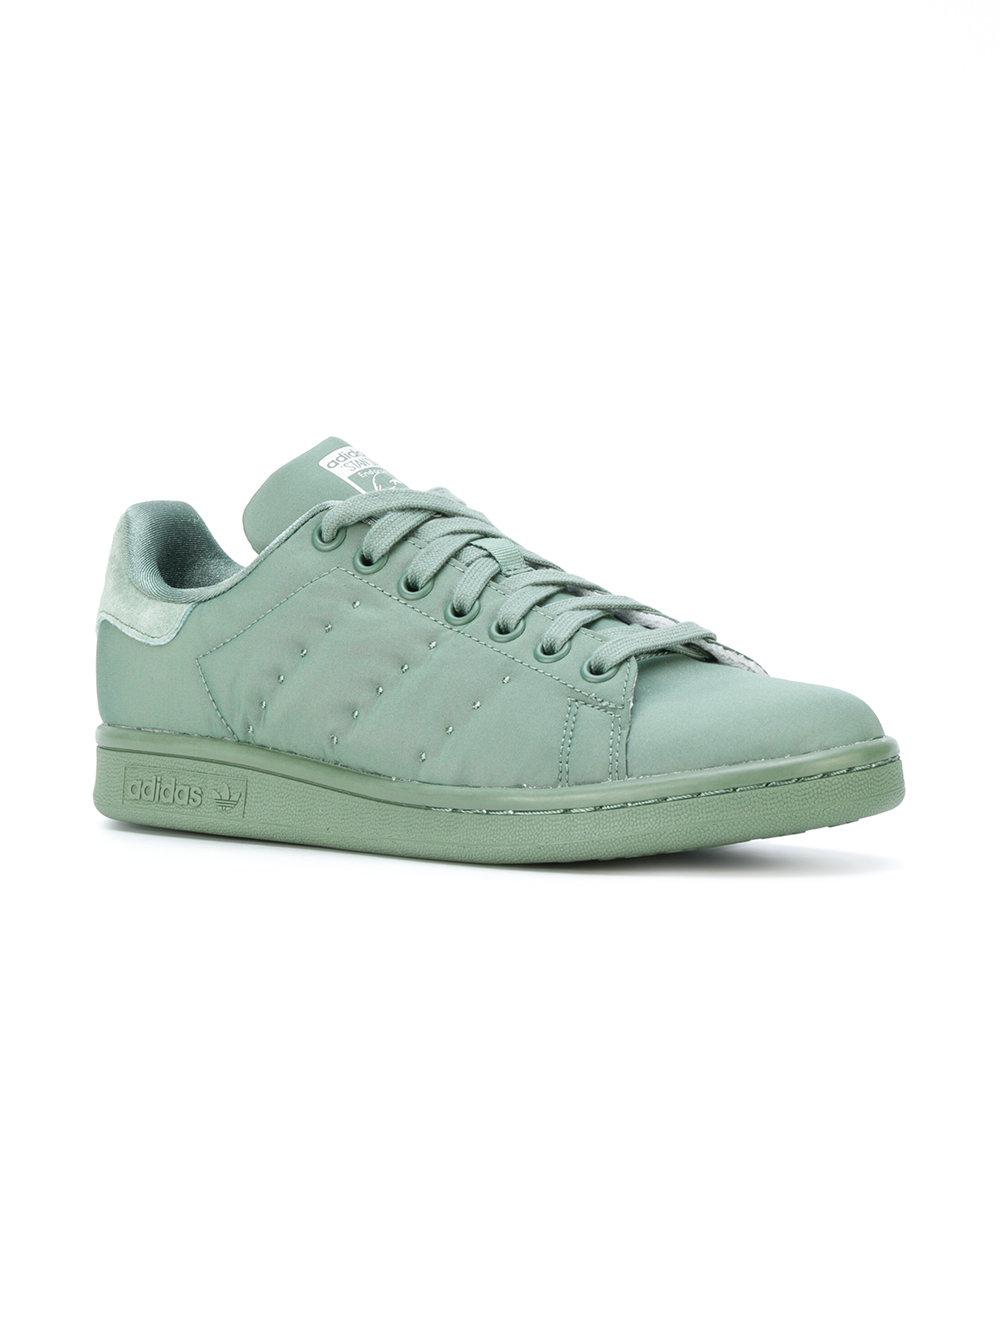 1075b25ba41c Gallery. Previously sold at  Farfetch · Women s Adidas Stan Smith Women s  Argyle Sneakers ...